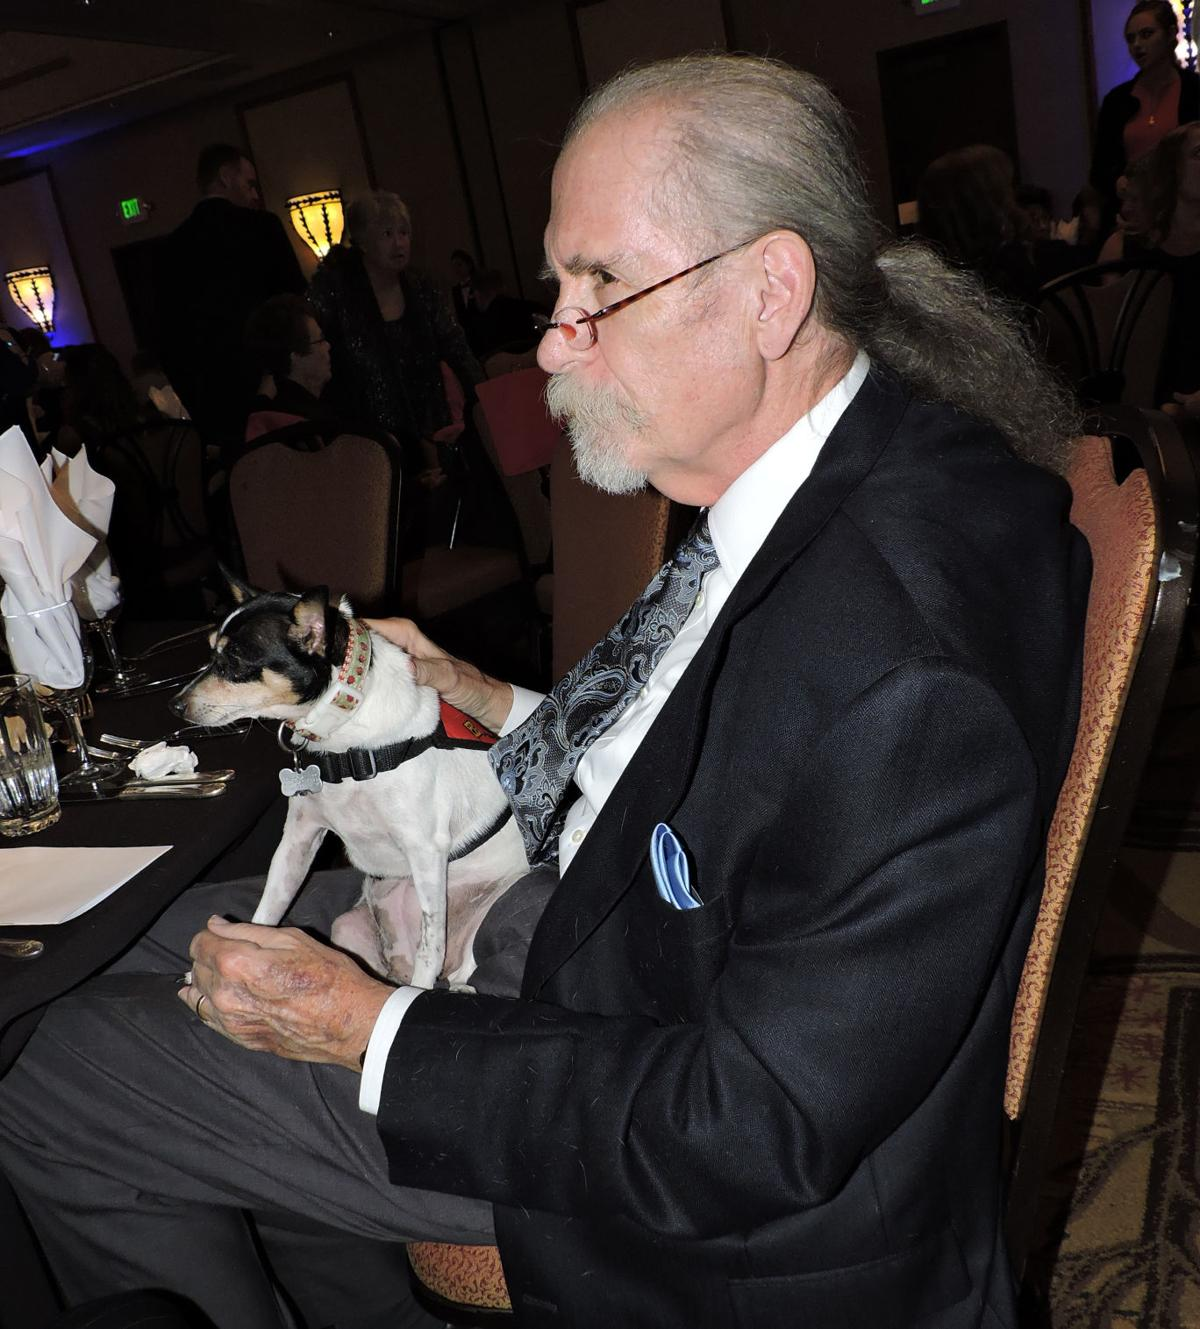 National Mill Dog Rescue benefit gala: Rich Strader and rescue dog Rosie listen to conversations at the gala. 101417 Photo by Linda Navarro